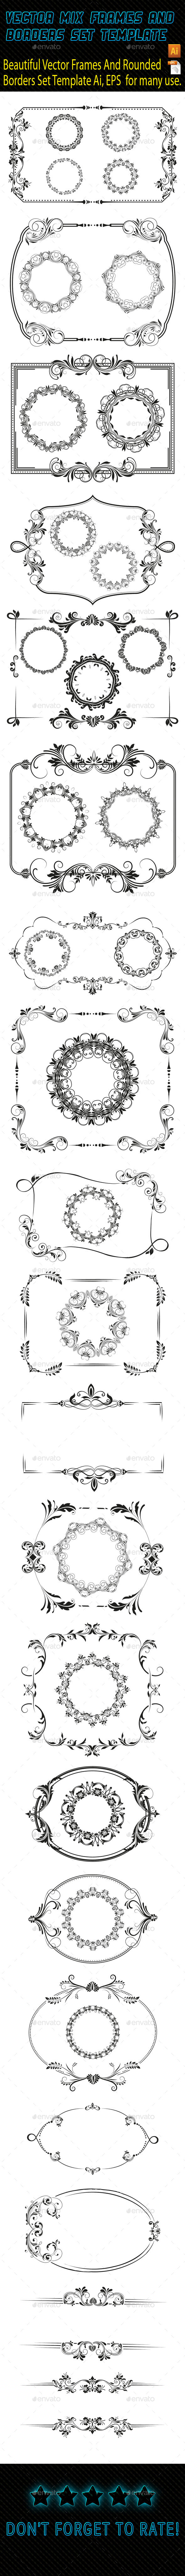 Frames and Borders Template - Borders Decorative